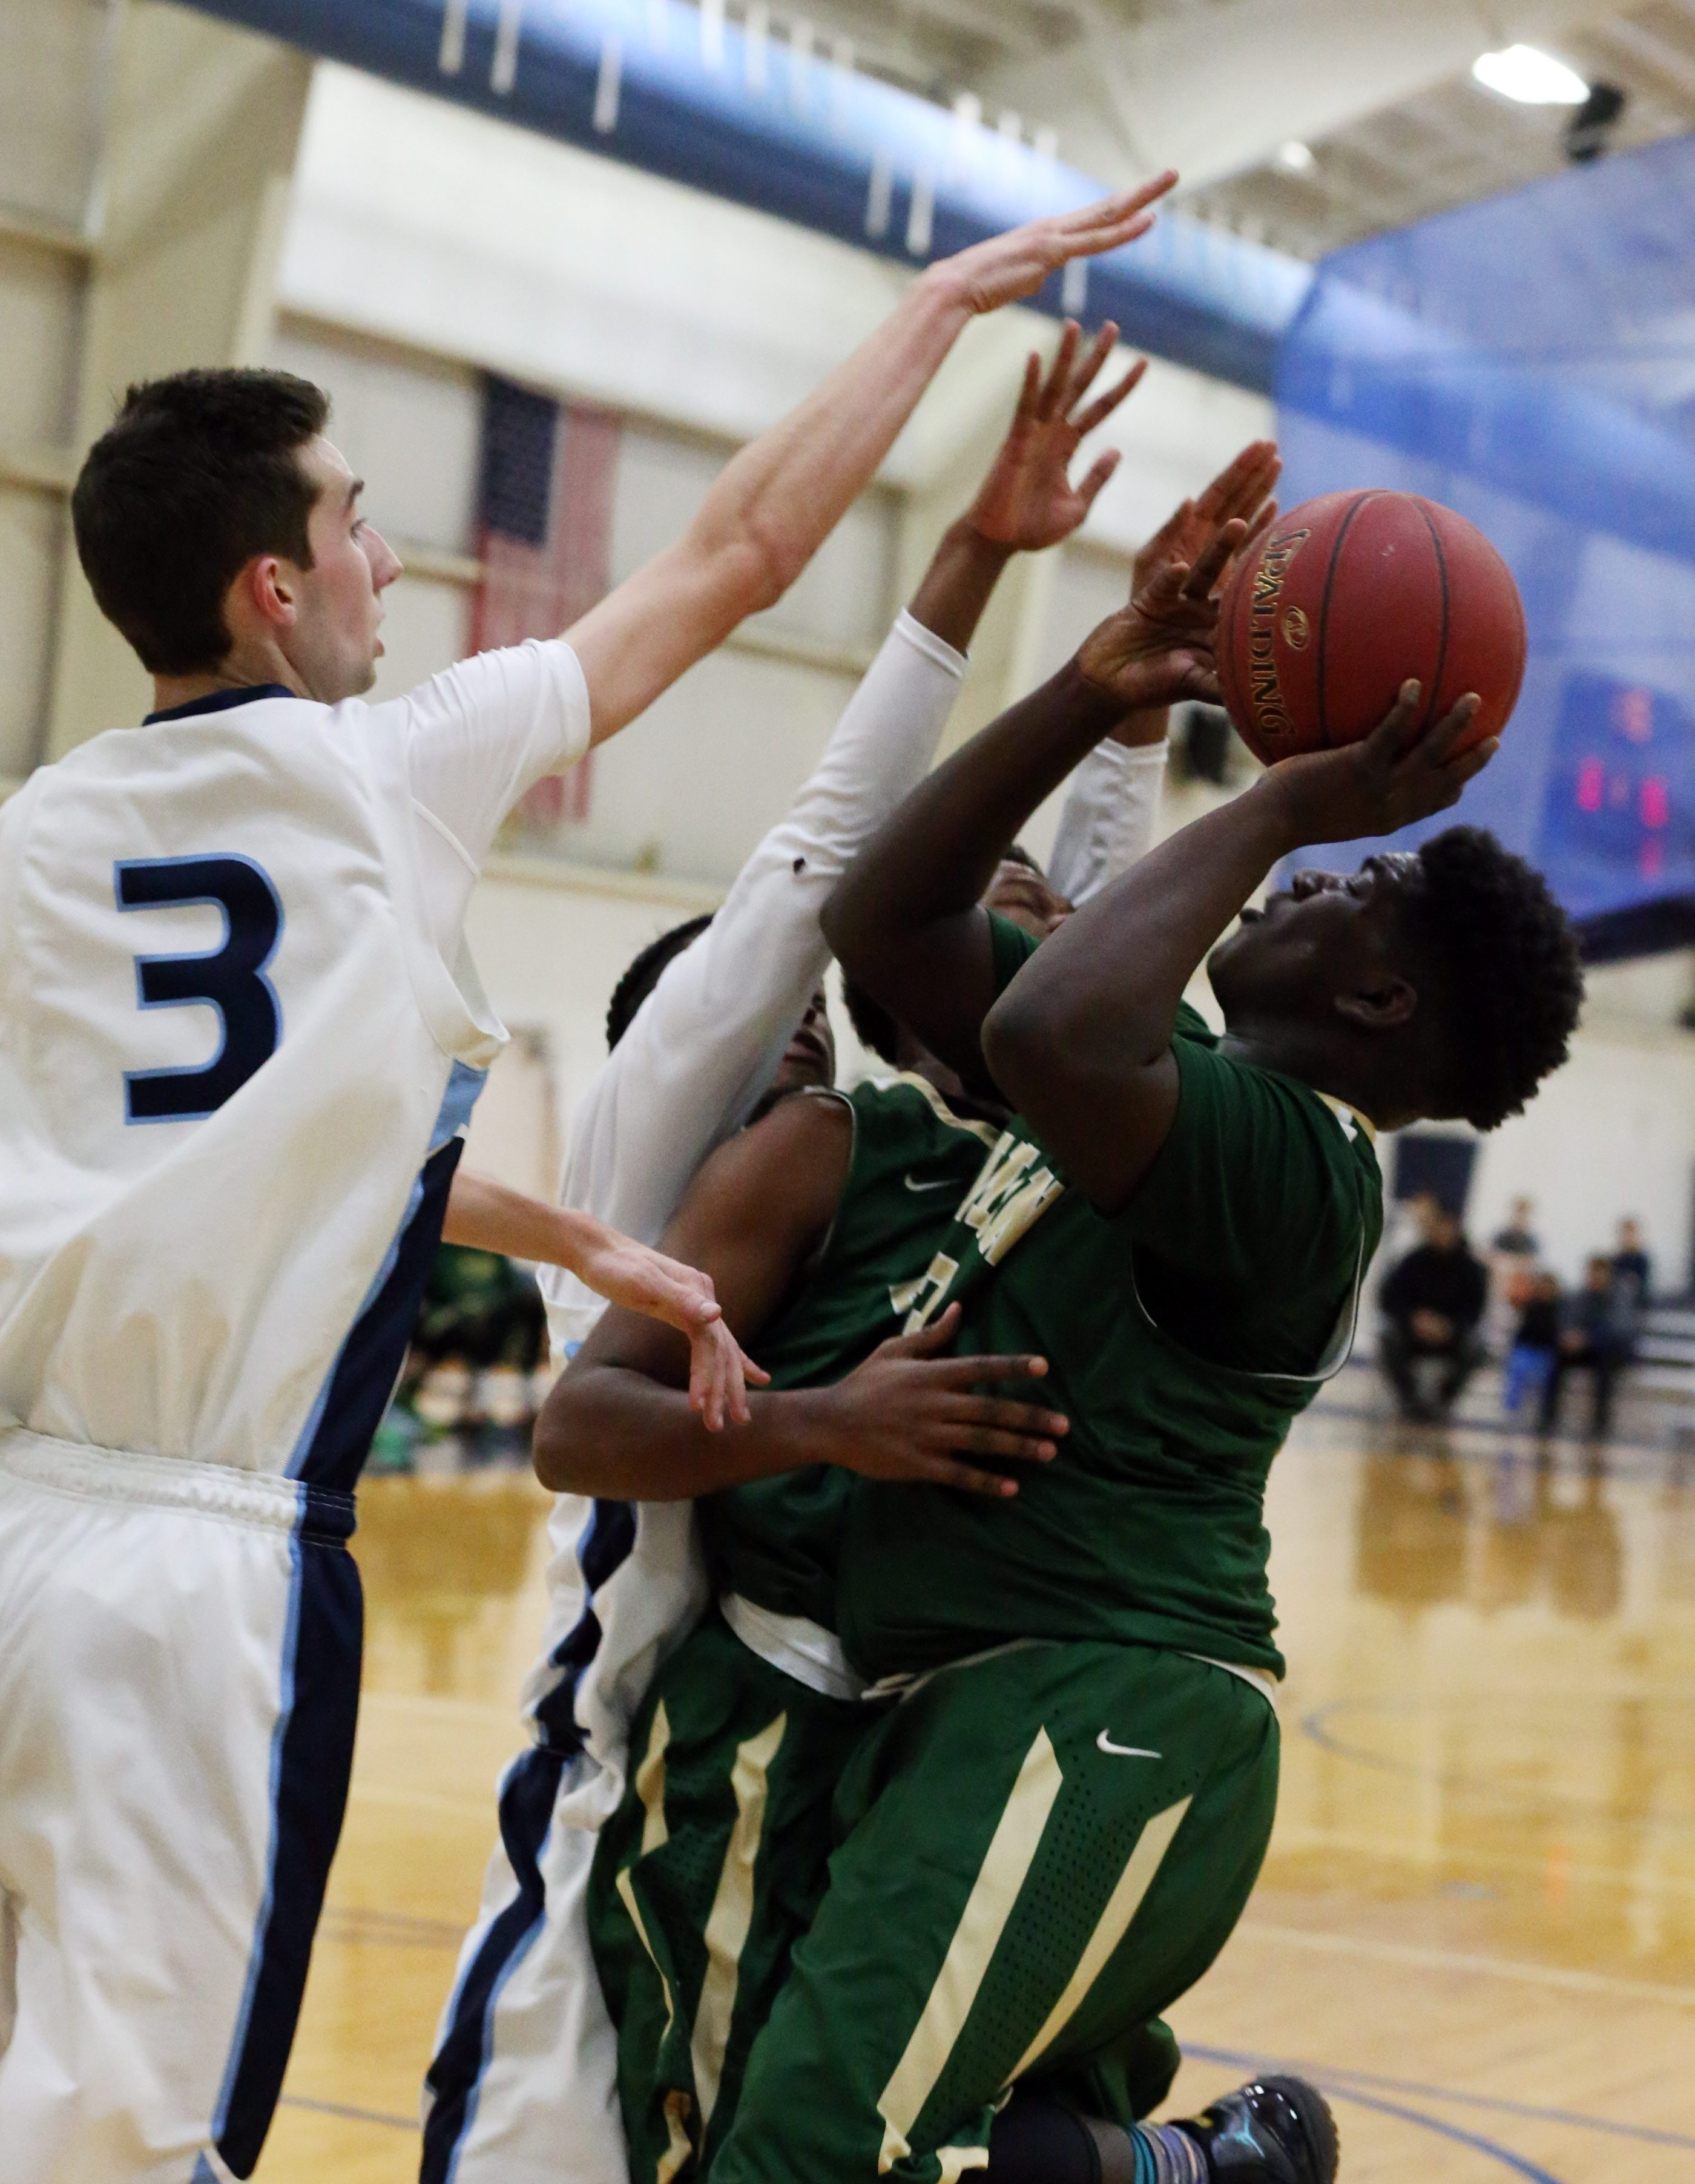 Bishop Timon-St. Jude's Joe Harrison runs into a traffic jam, including St. Mary's Austin Oakes (3) among others. Timon won the game, 82-80, in four overtimes.